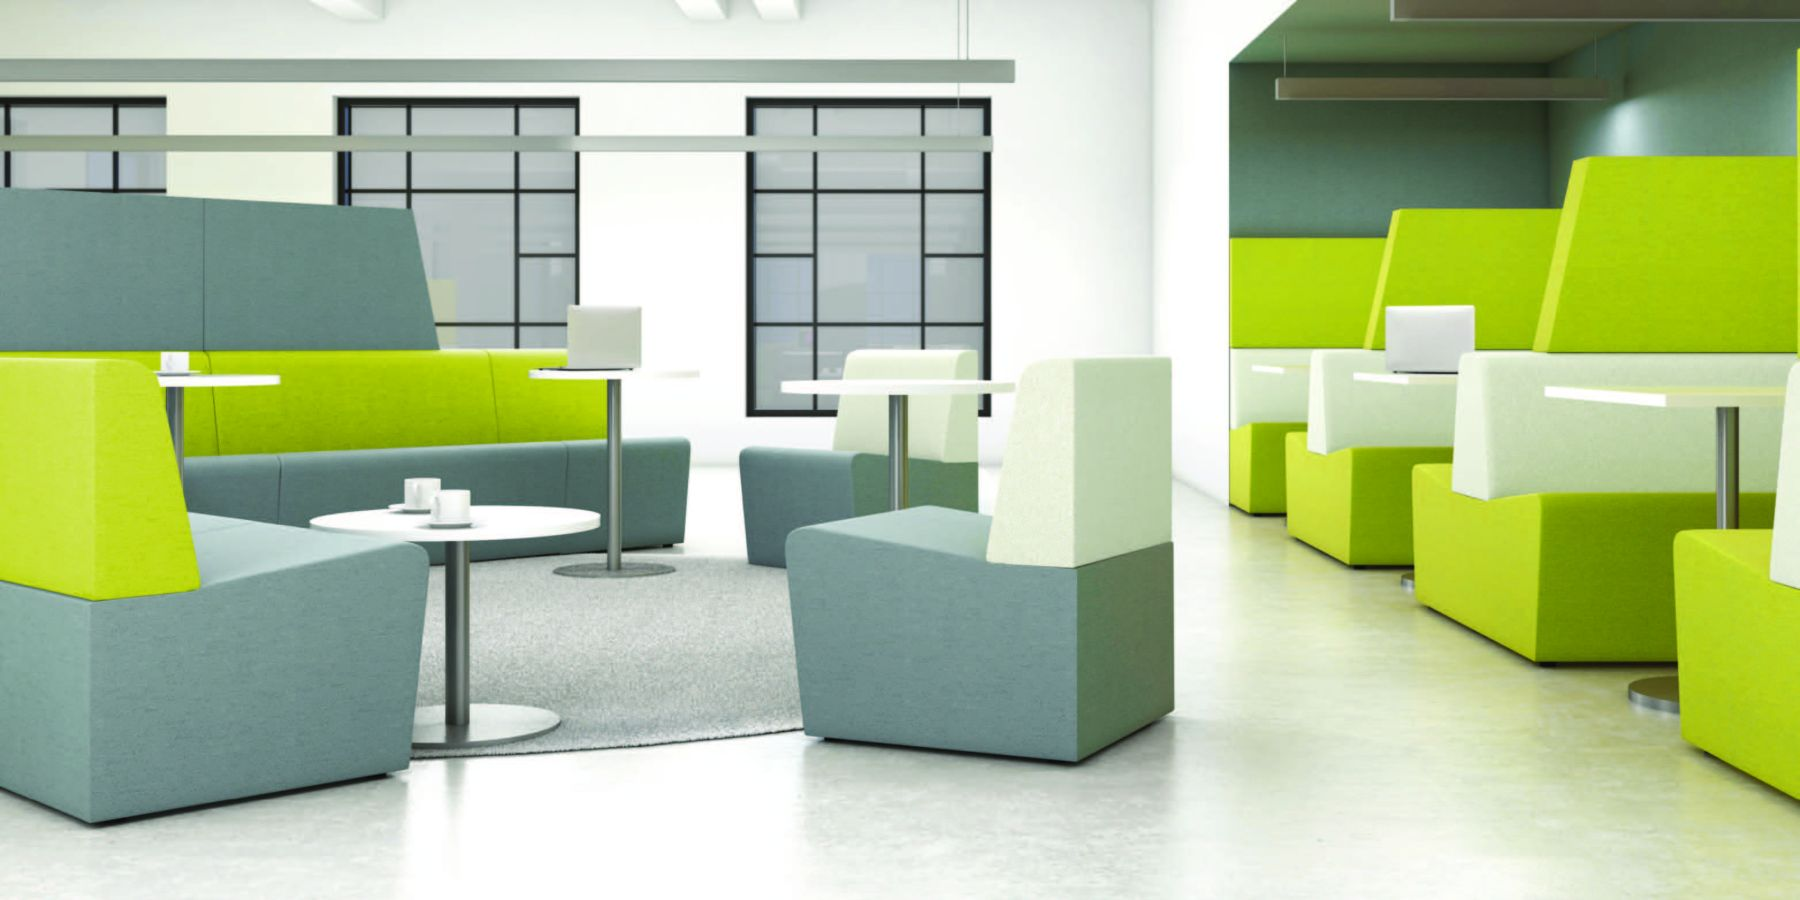 green seating area in healthcare sector